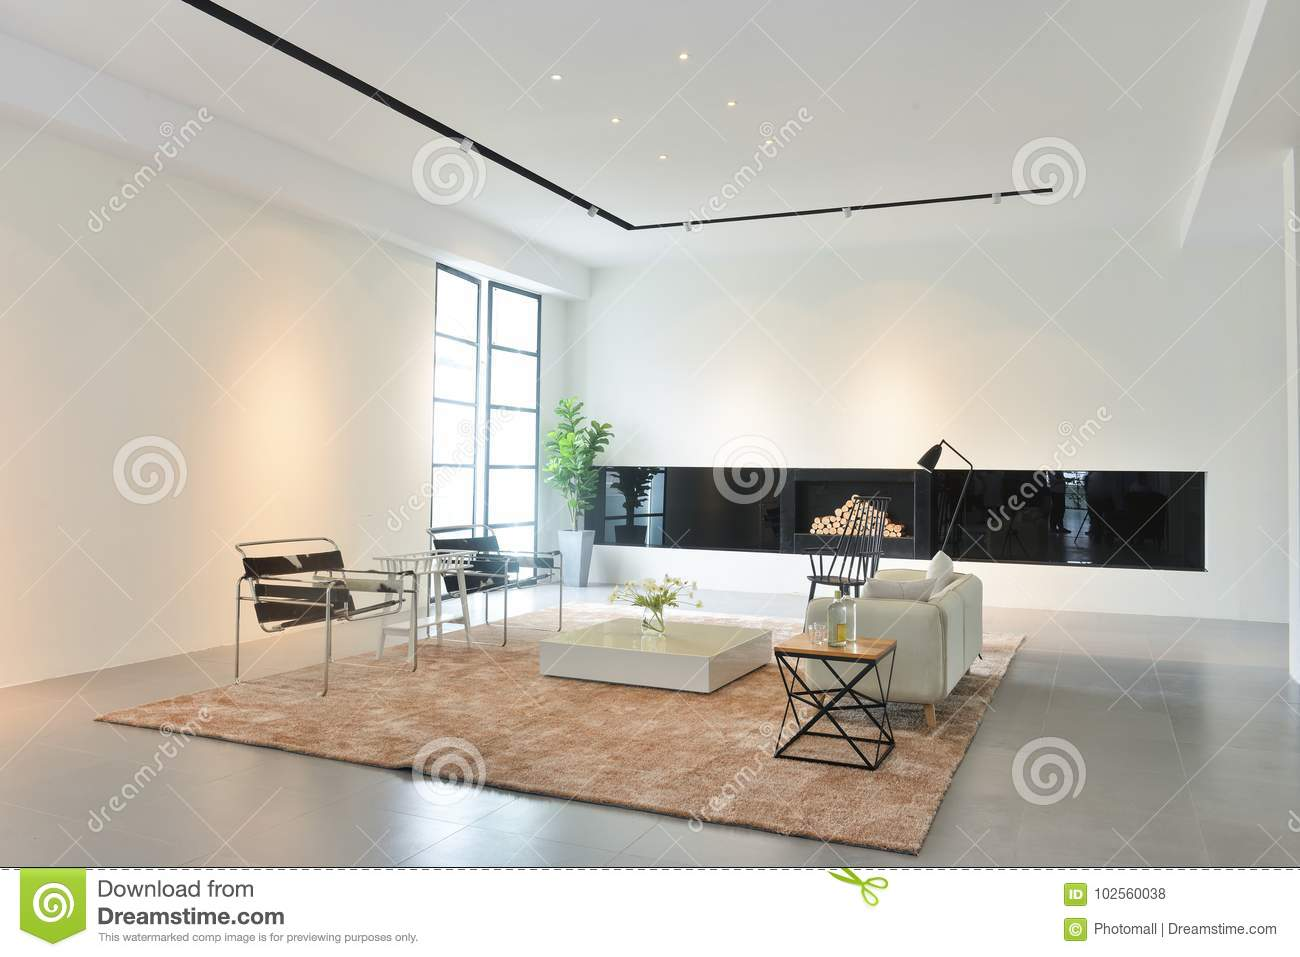 Intérieur De Salon De Maison Moderne Photo stock - Image du brun ...